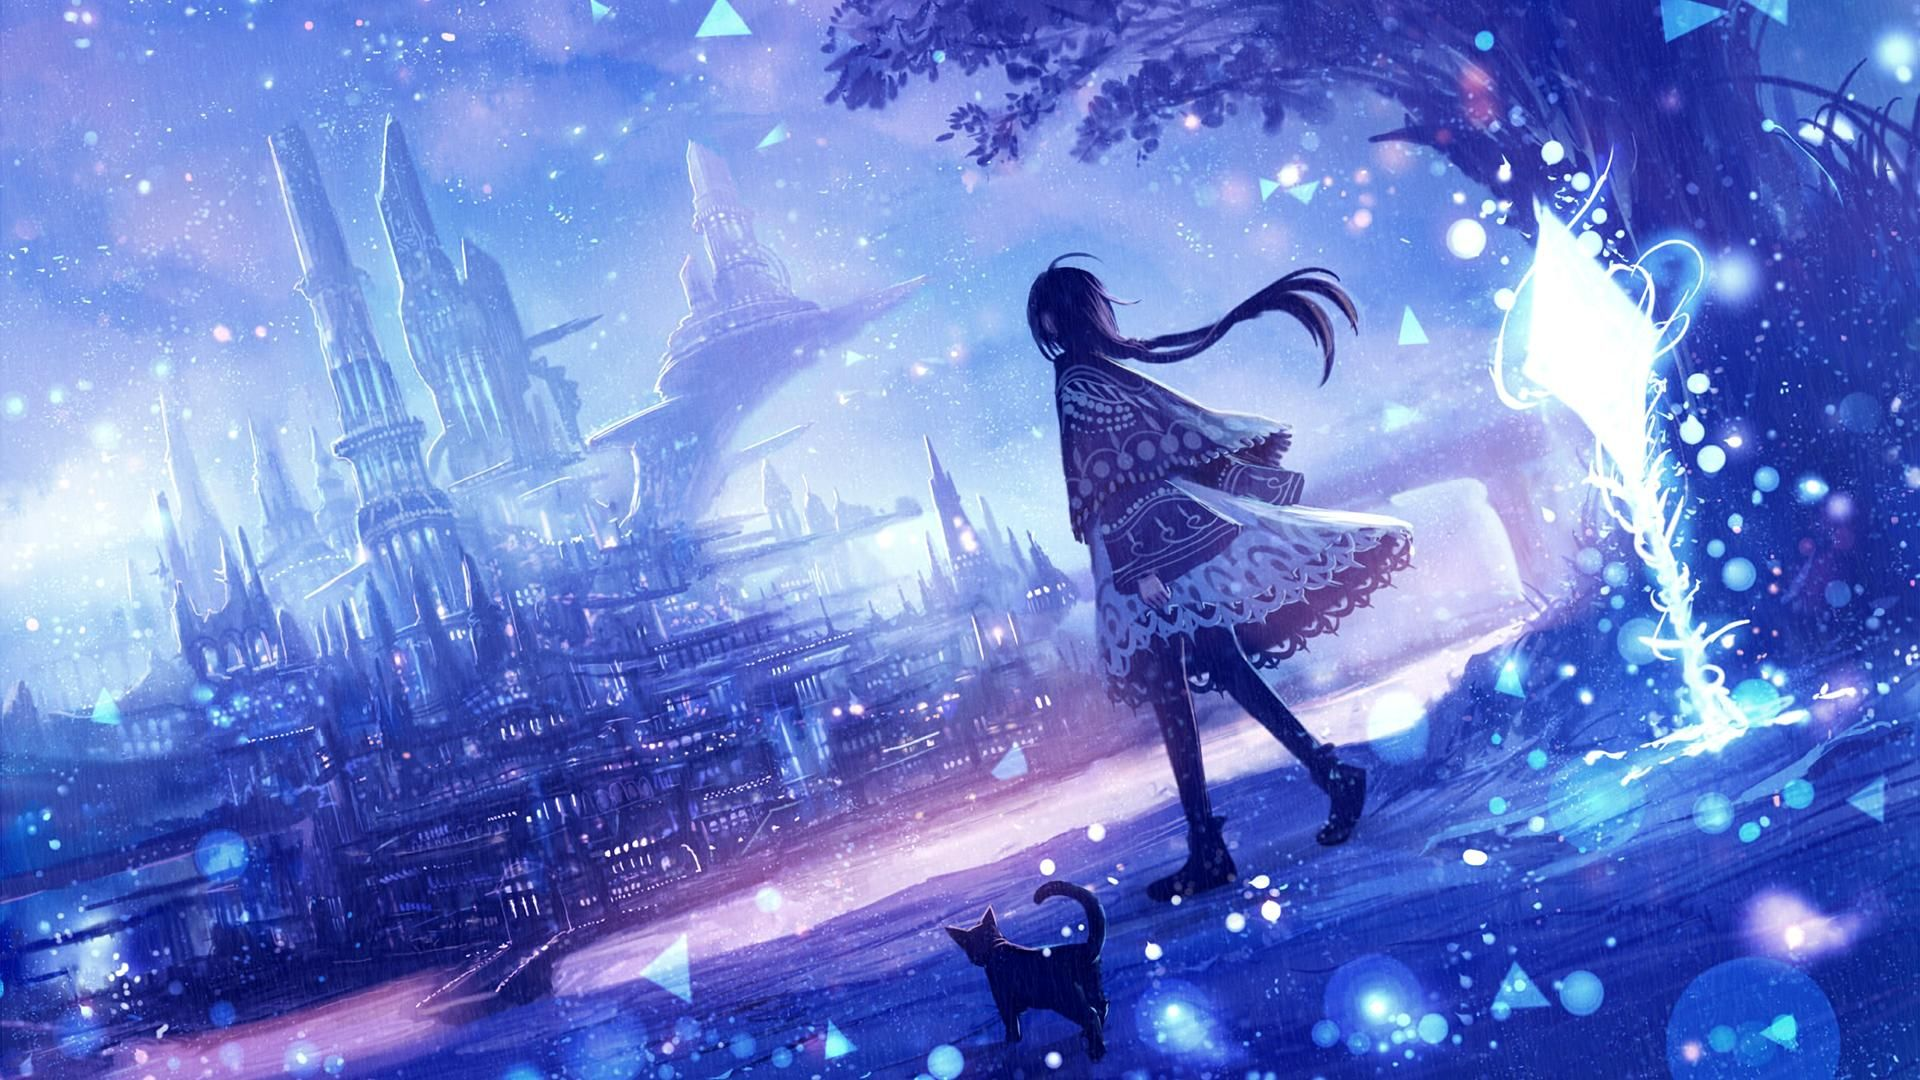 Mystical Original 1920x1080 Anime Wallpaper 1920x1080 Anime Wallpaper Anime Scenery